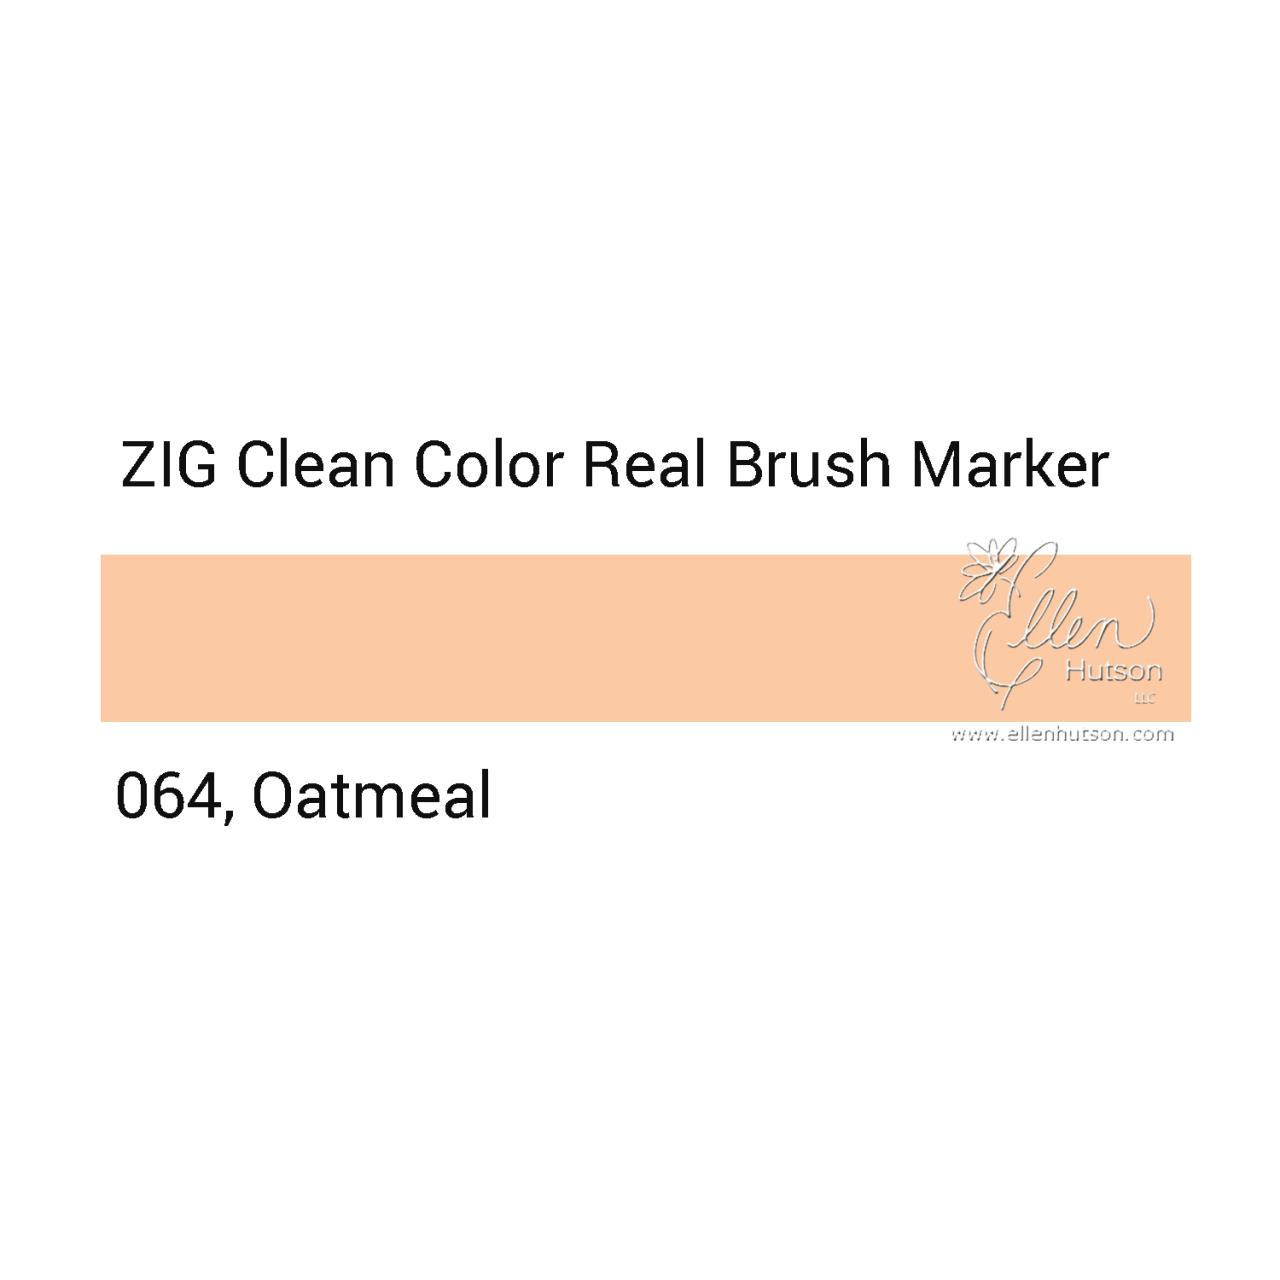 064 - Oatmeal, ZIG Clean Color Real Brush Marker -